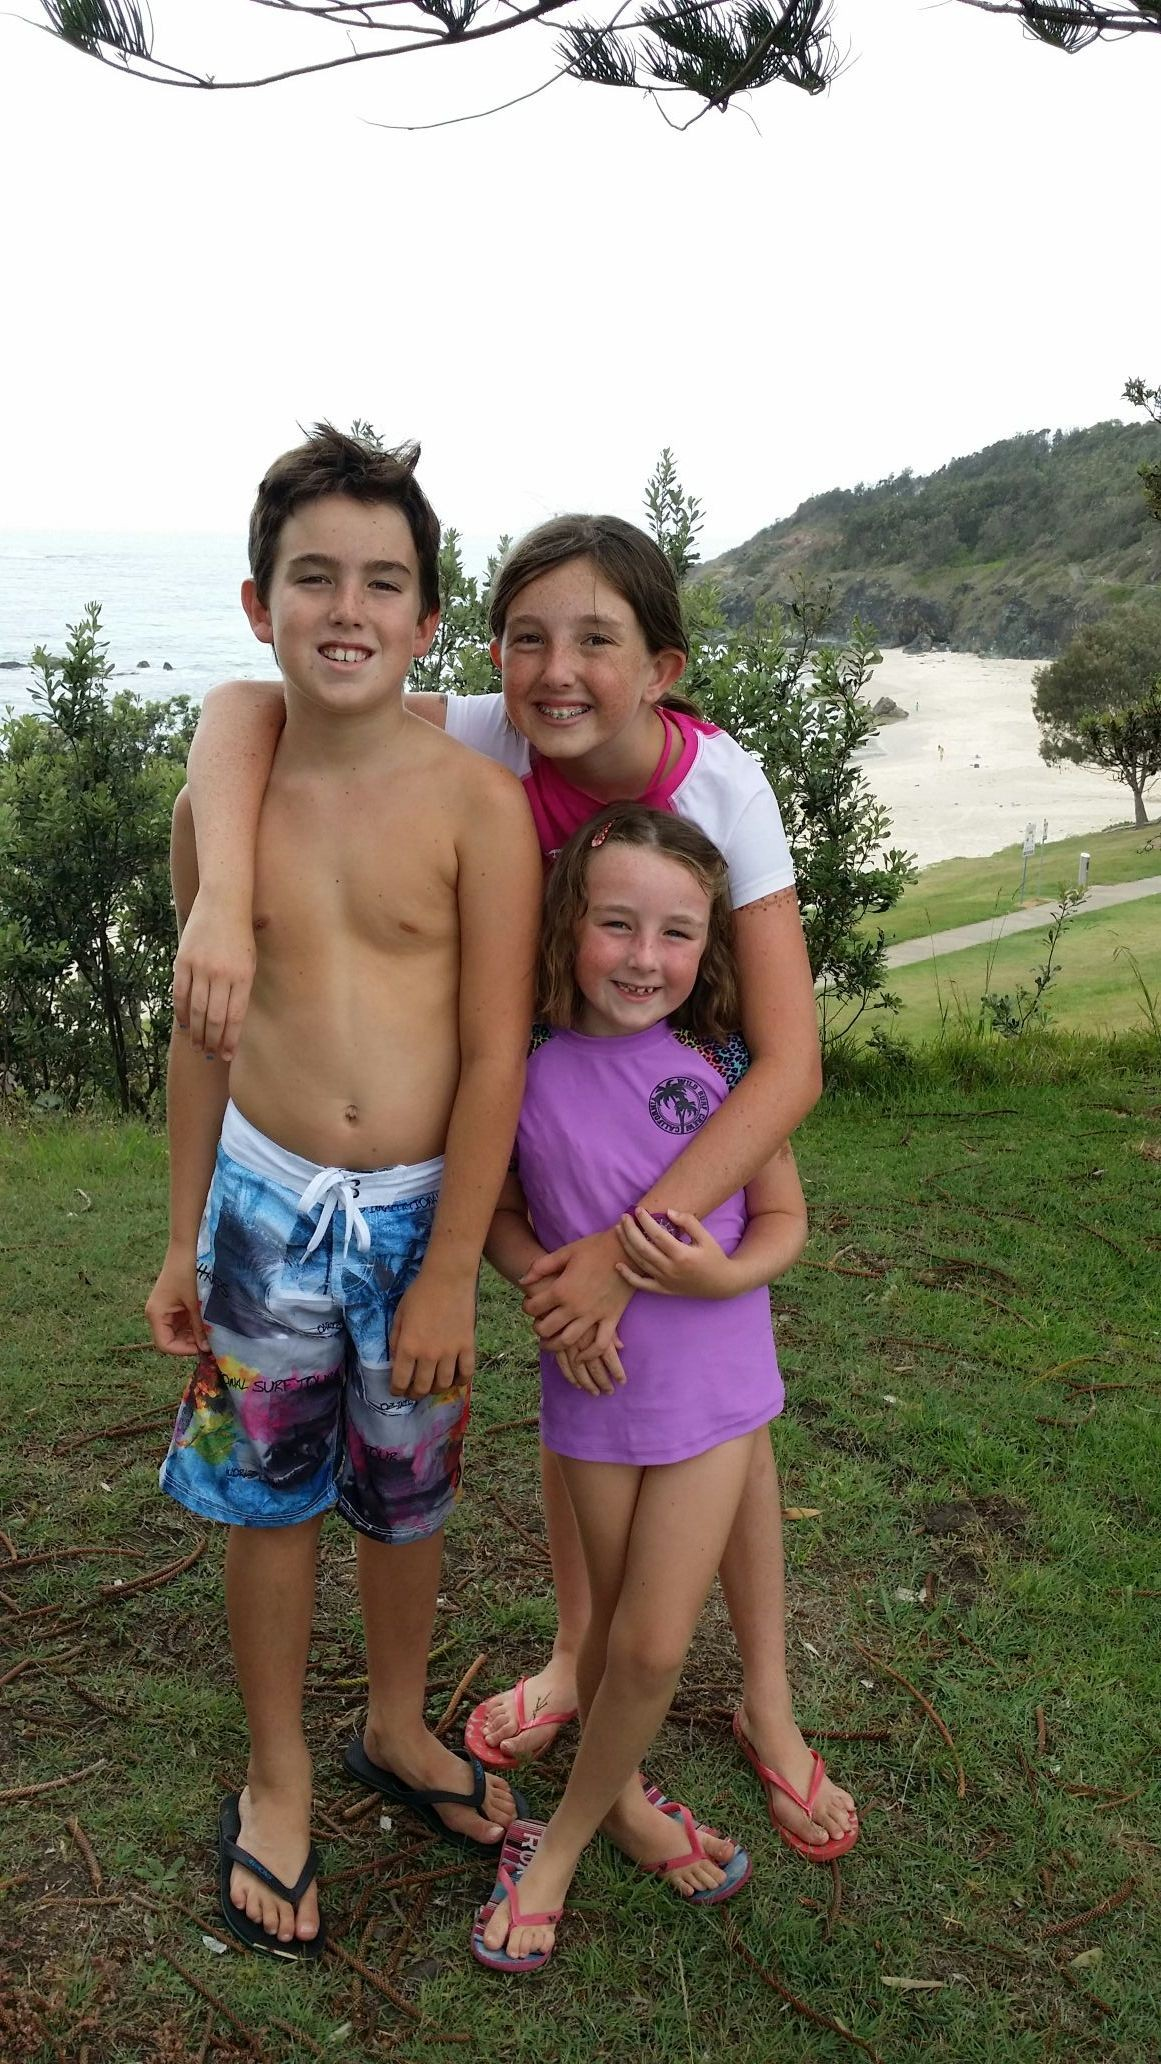 And a swim down oxley beach b 4 we go home 2 eat..merry xmas :)